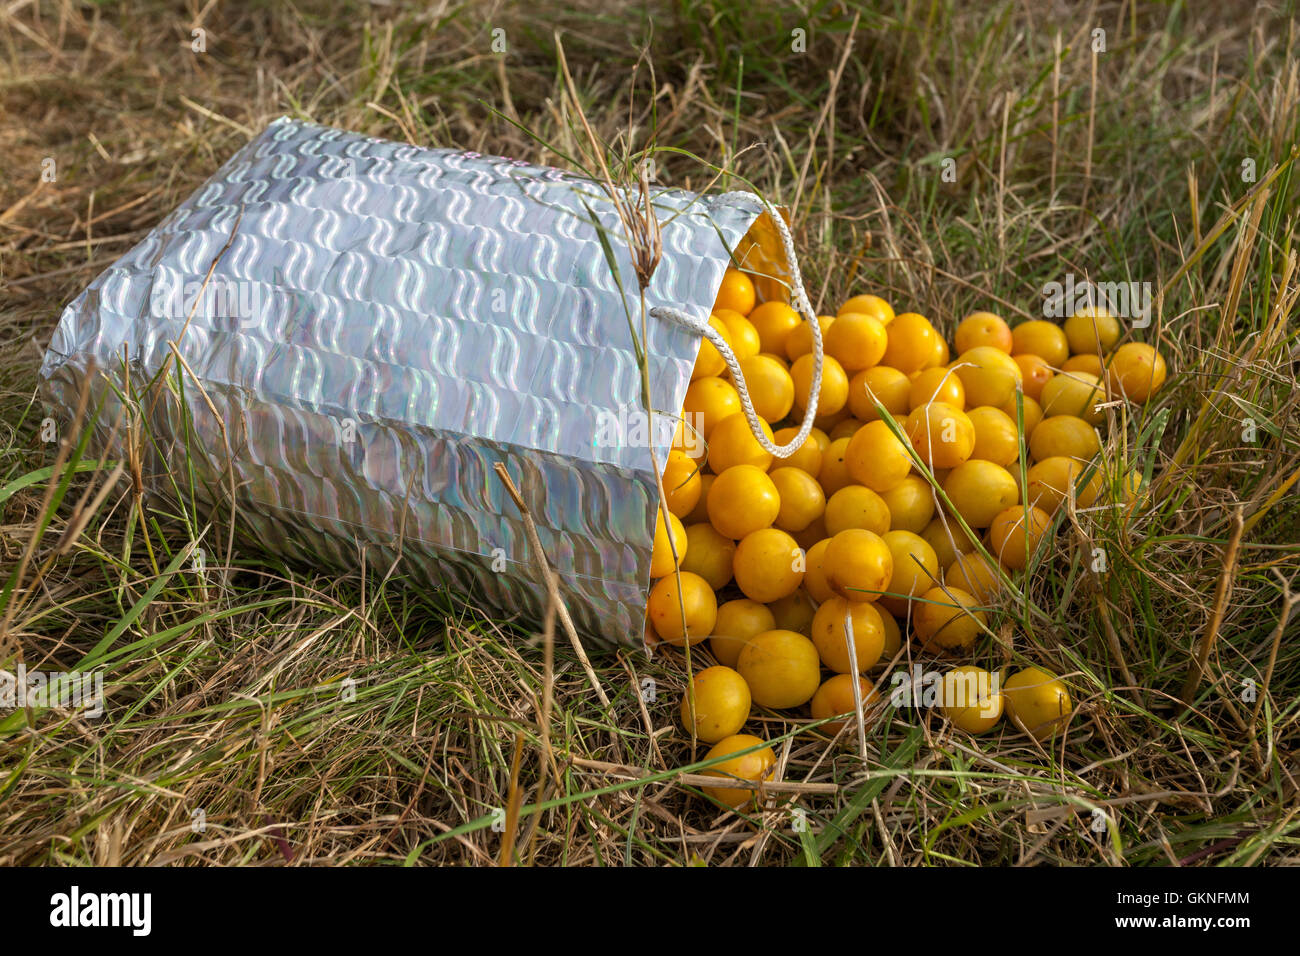 Yellow fruit myrobalans that spilled out of the bag, Czech Republic - Stock Image